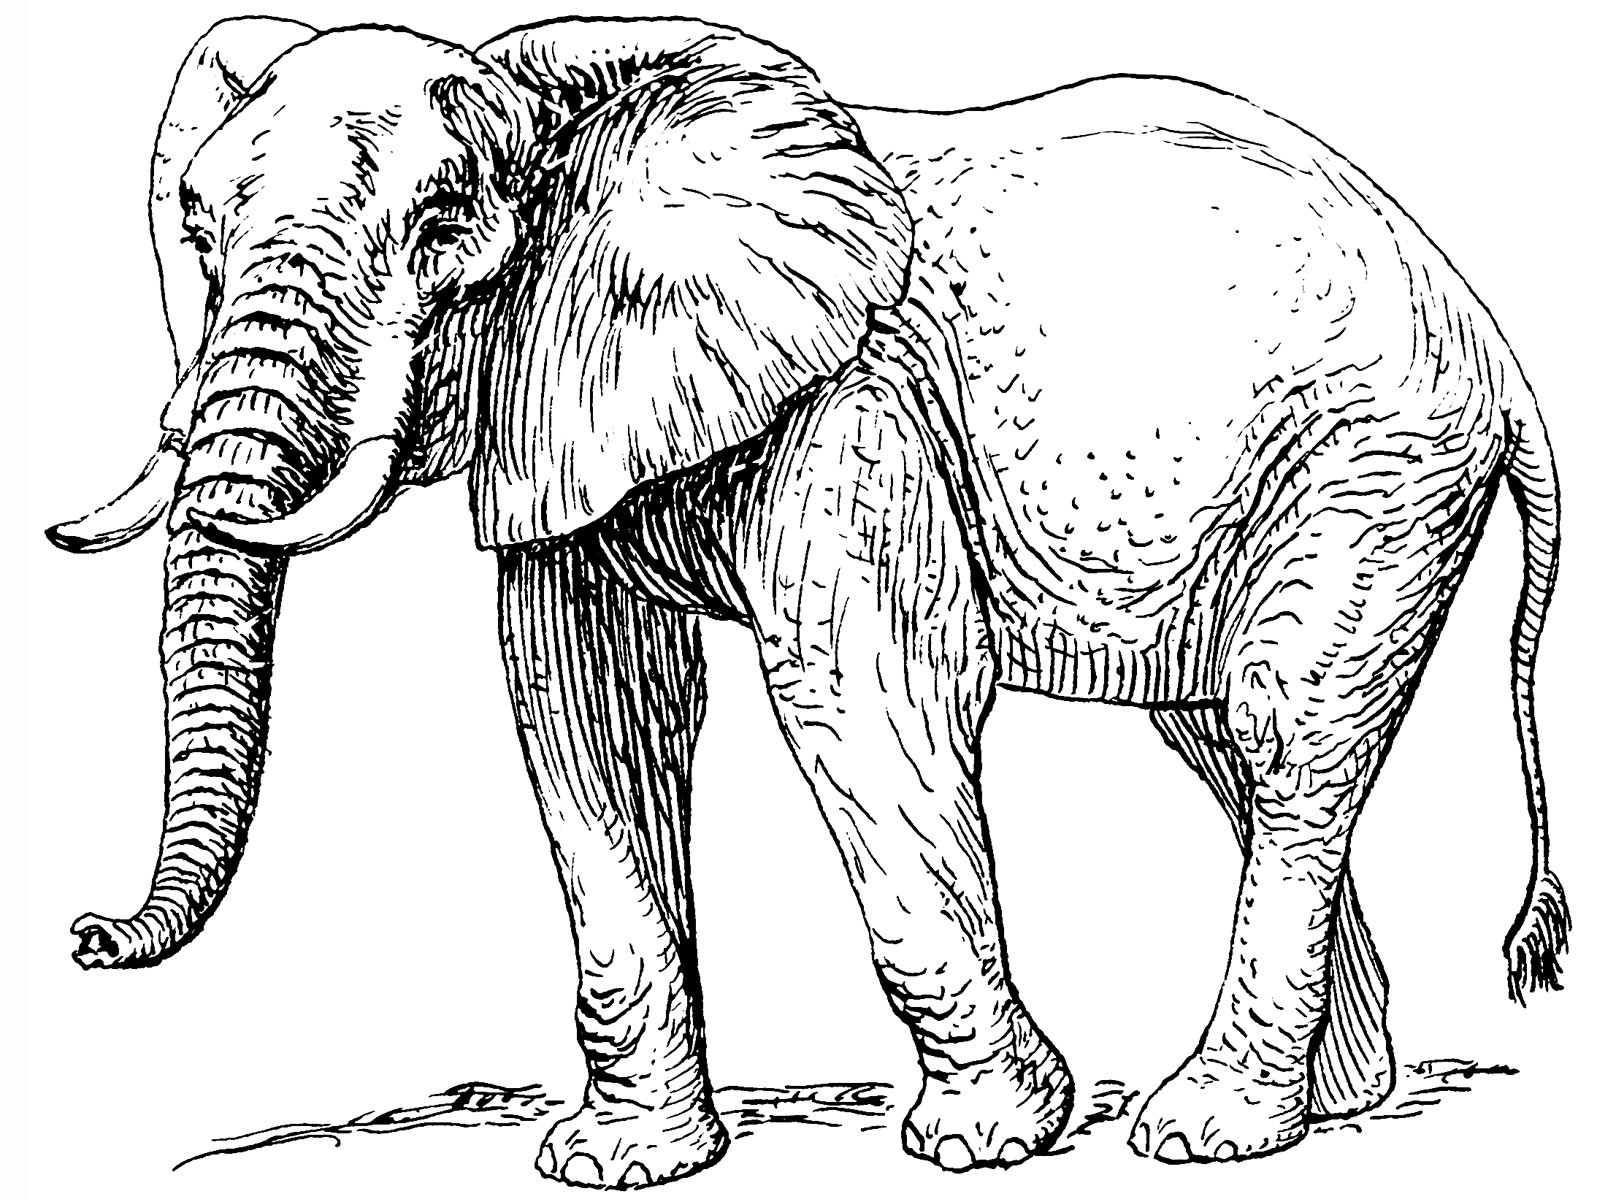 coloring book elephant images free printable elephant coloring pages for kids coloring images elephant book